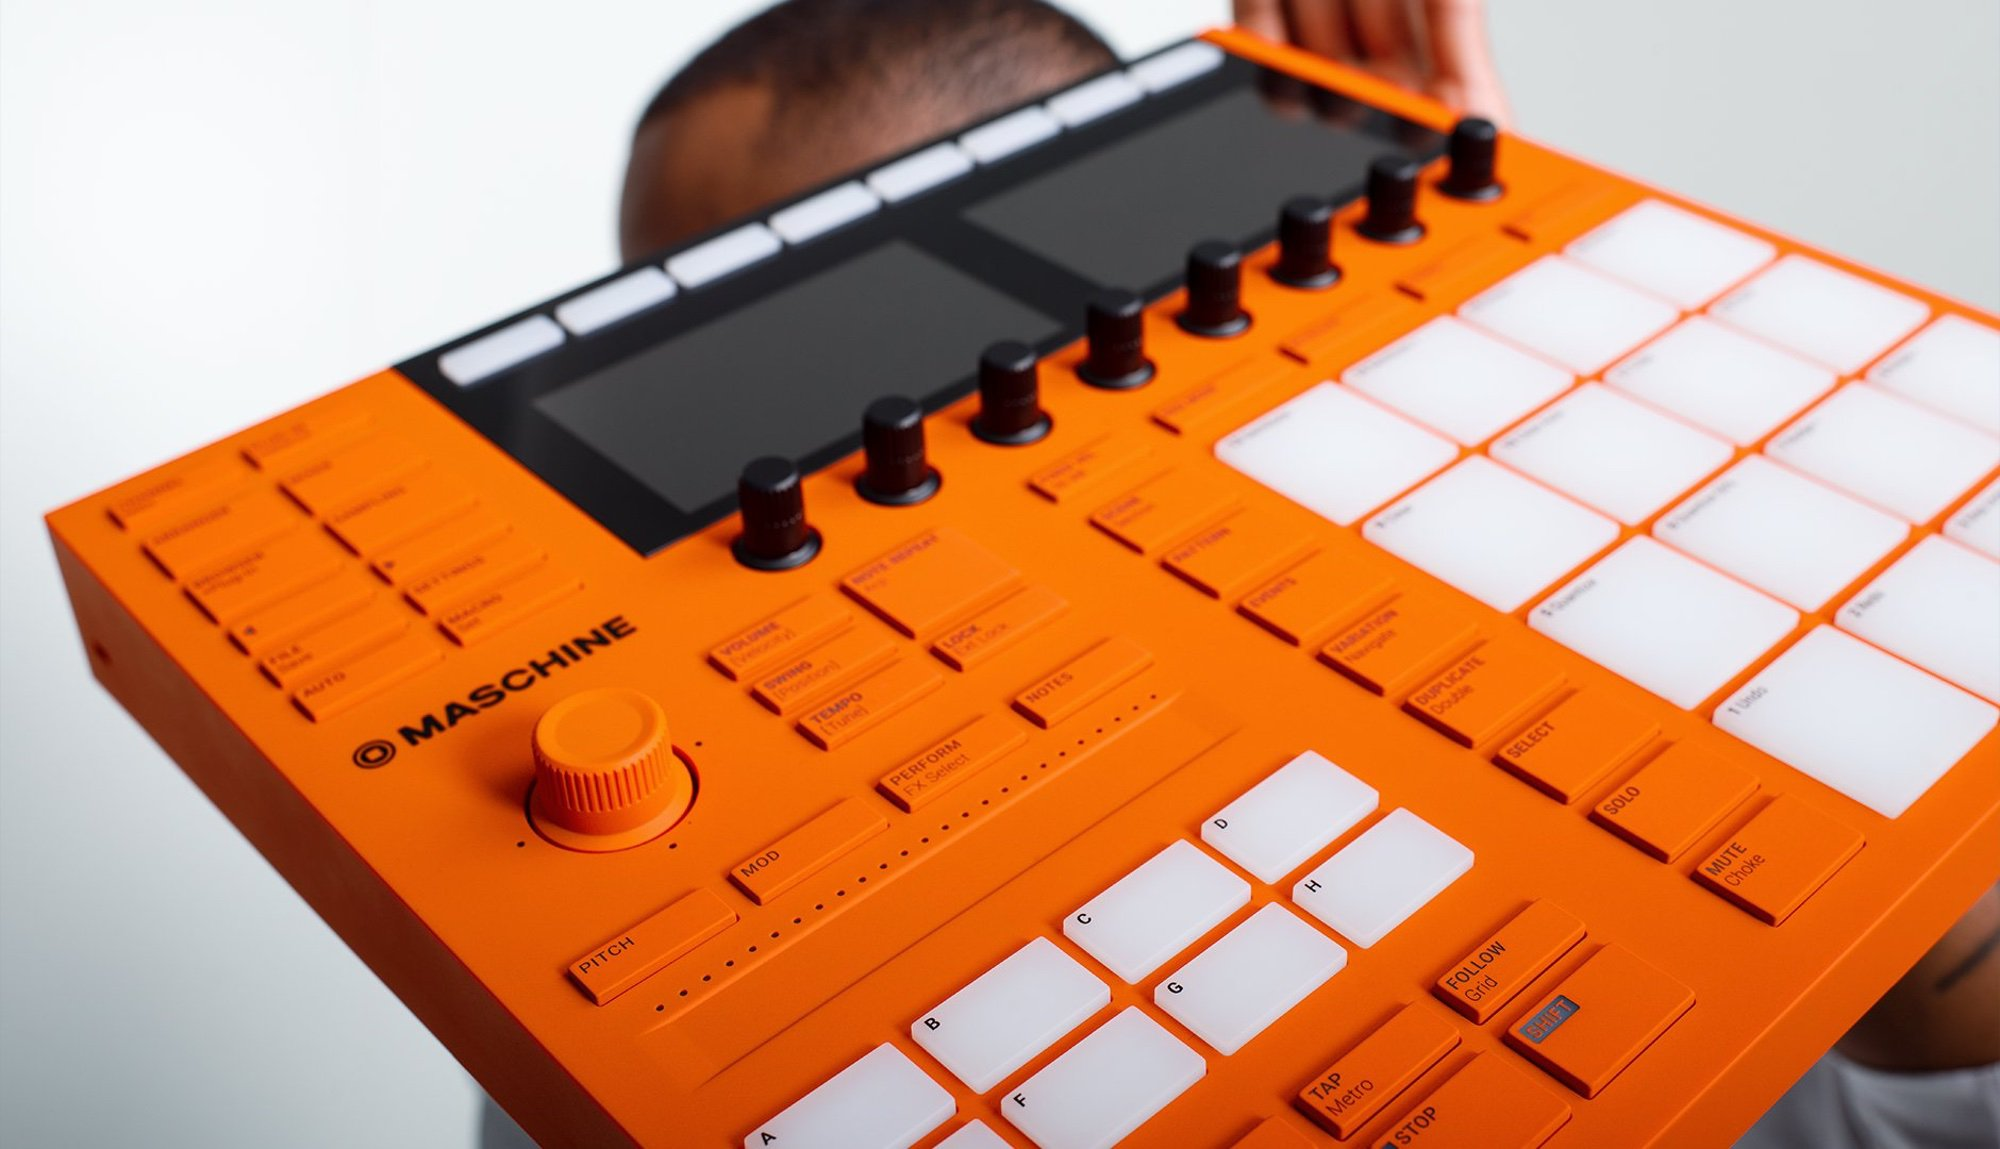 Native Instruments Machine MK3 emkay 3 10th birthday anniversary orange (9)